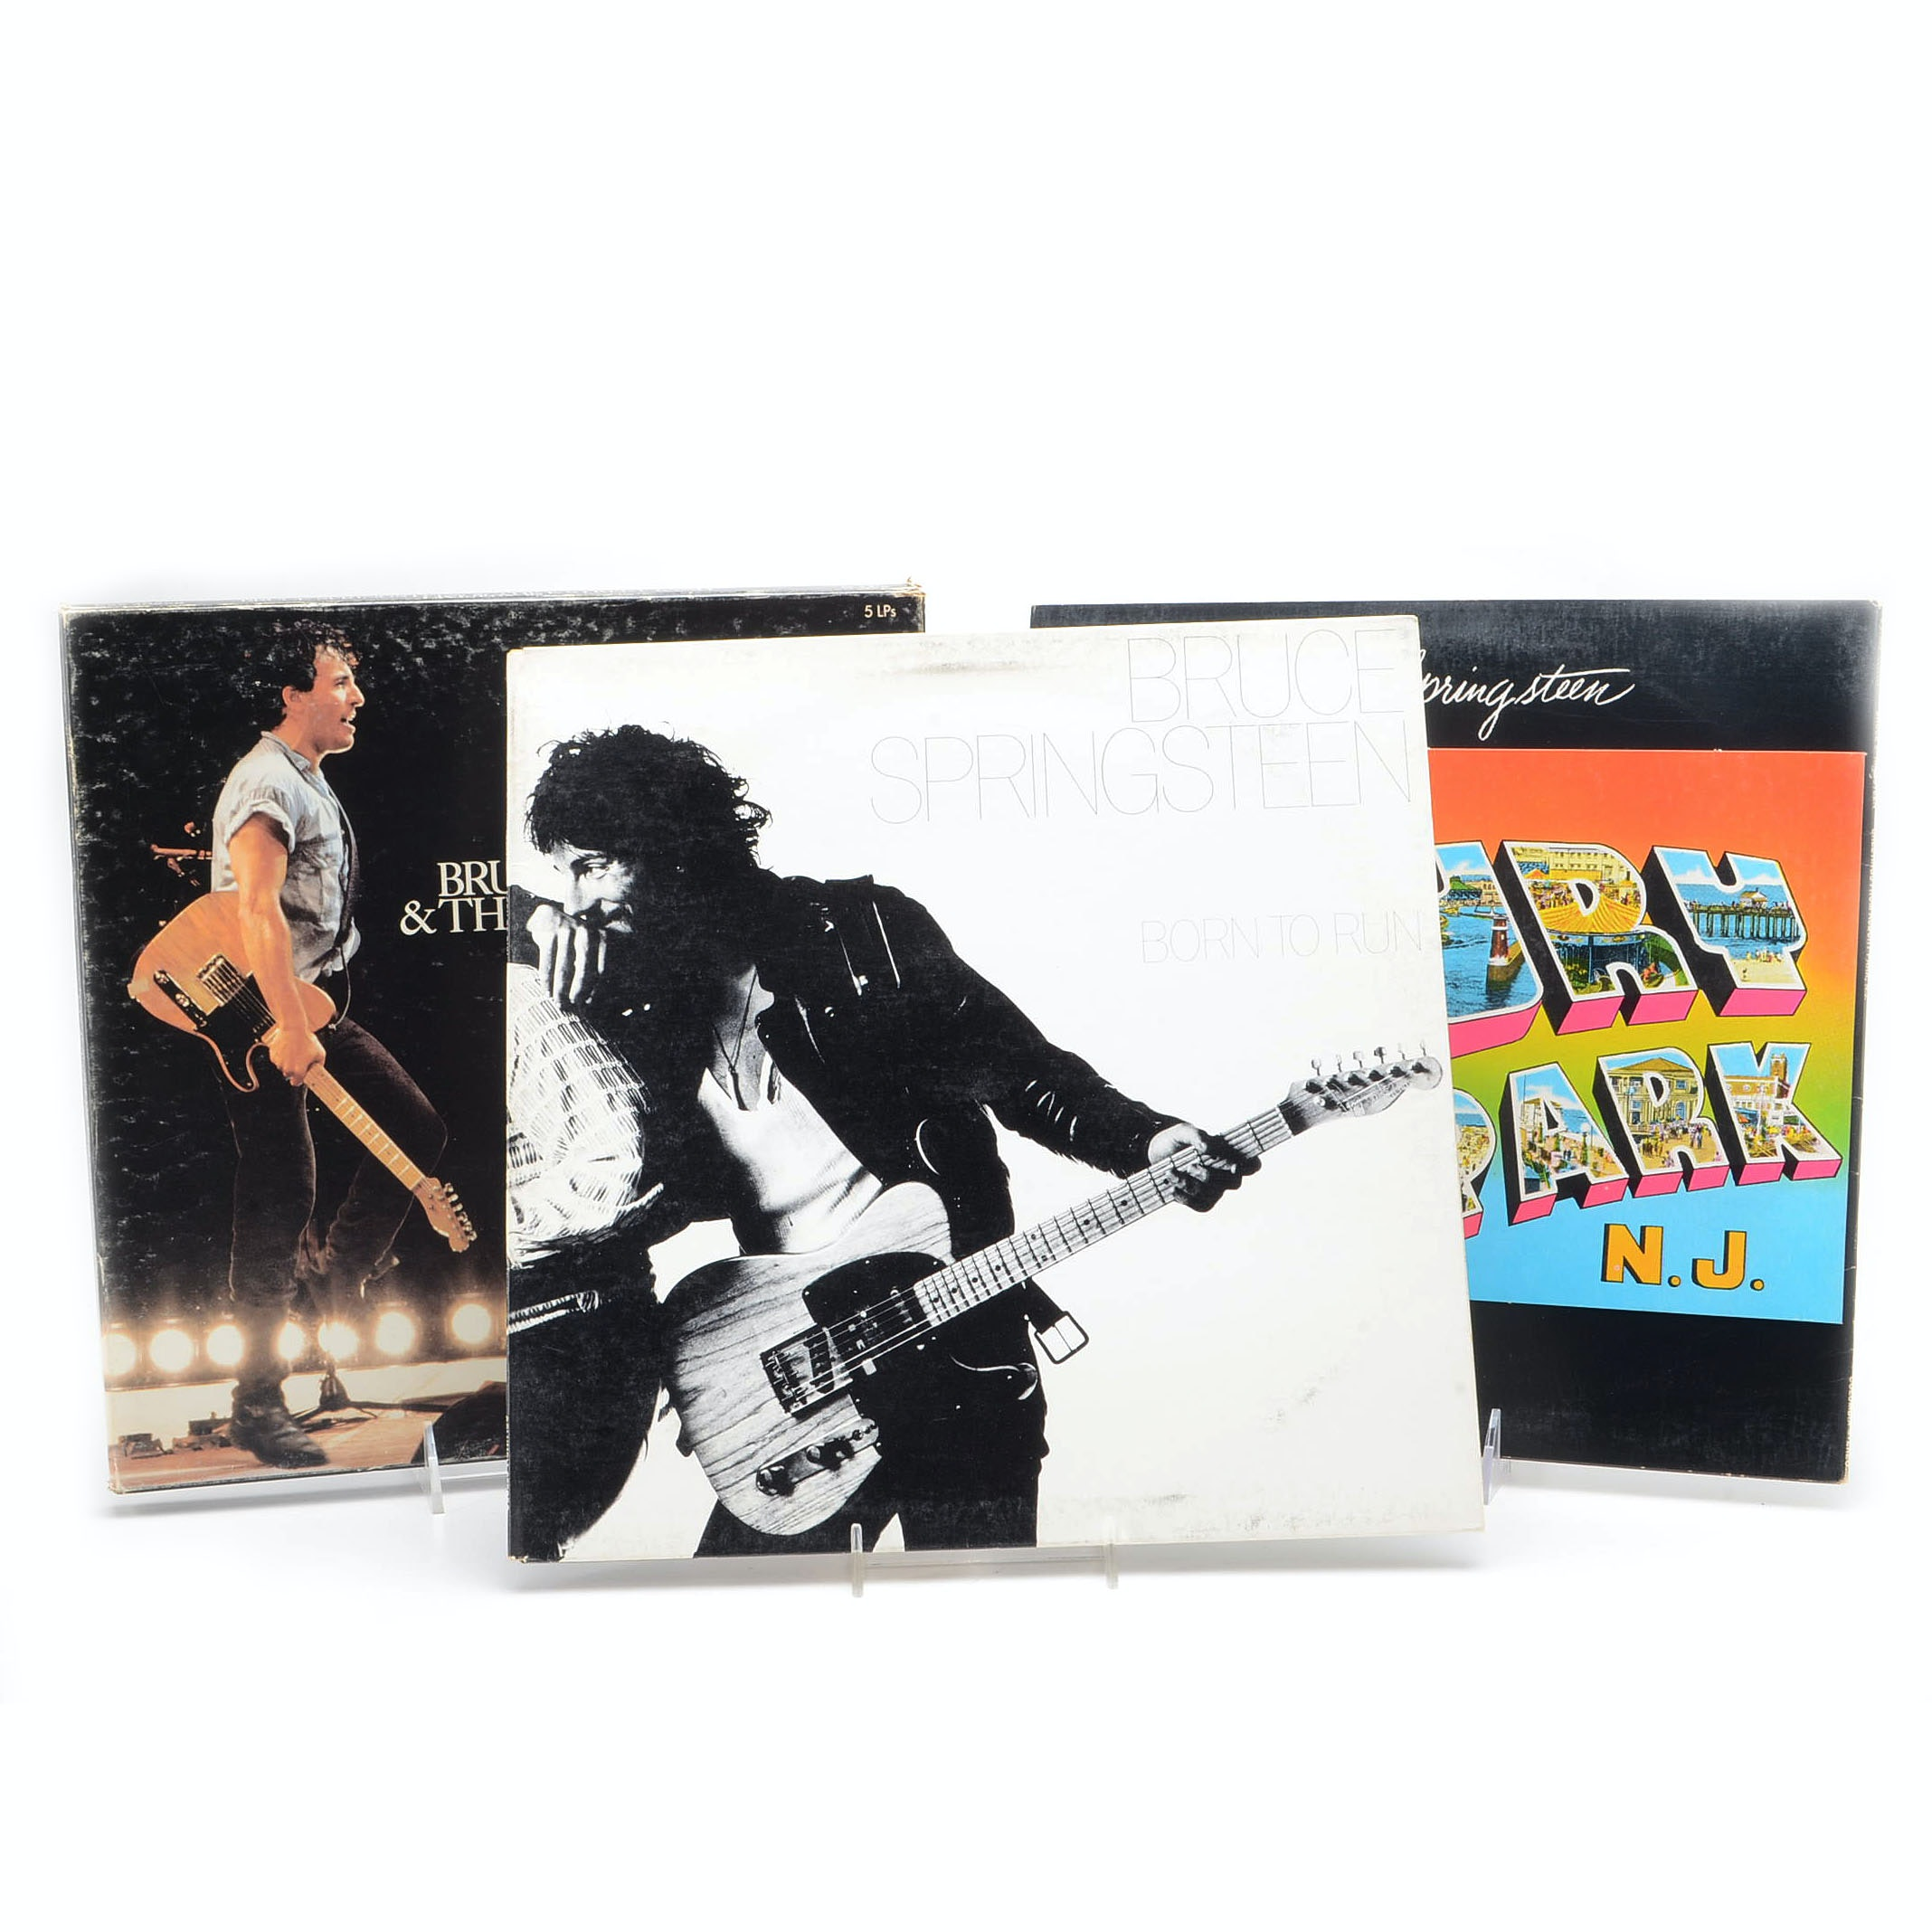 Collection of Bruce Springsteen Albums